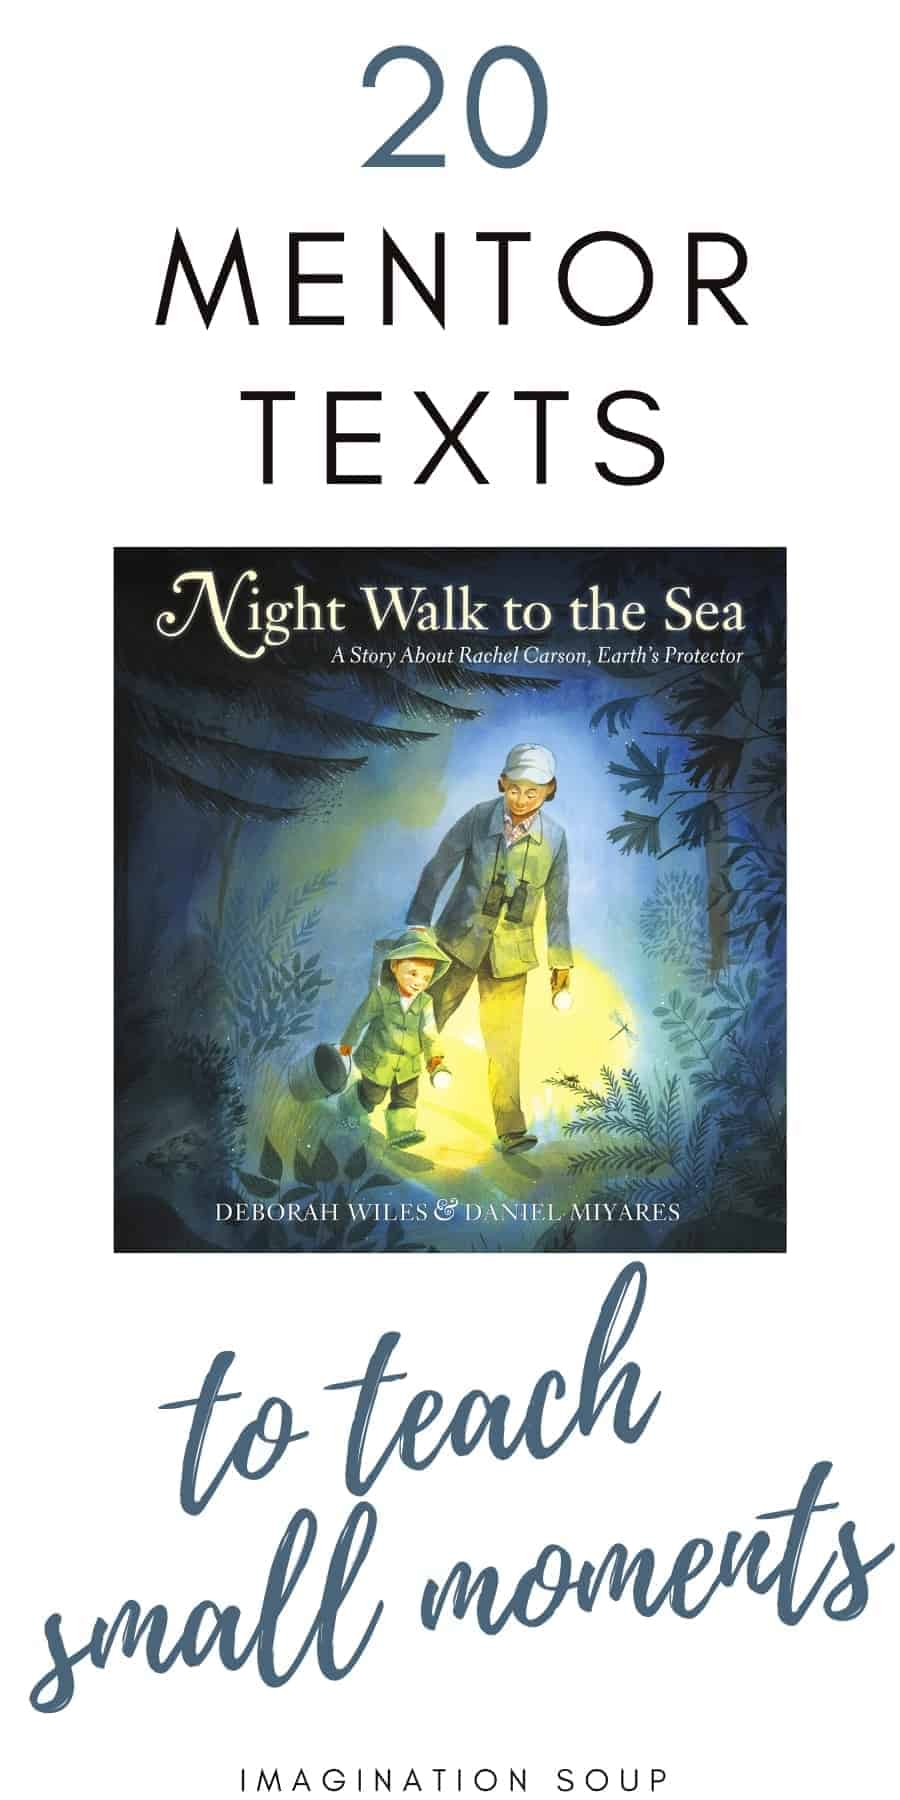 20 mentor texts to teach small moments